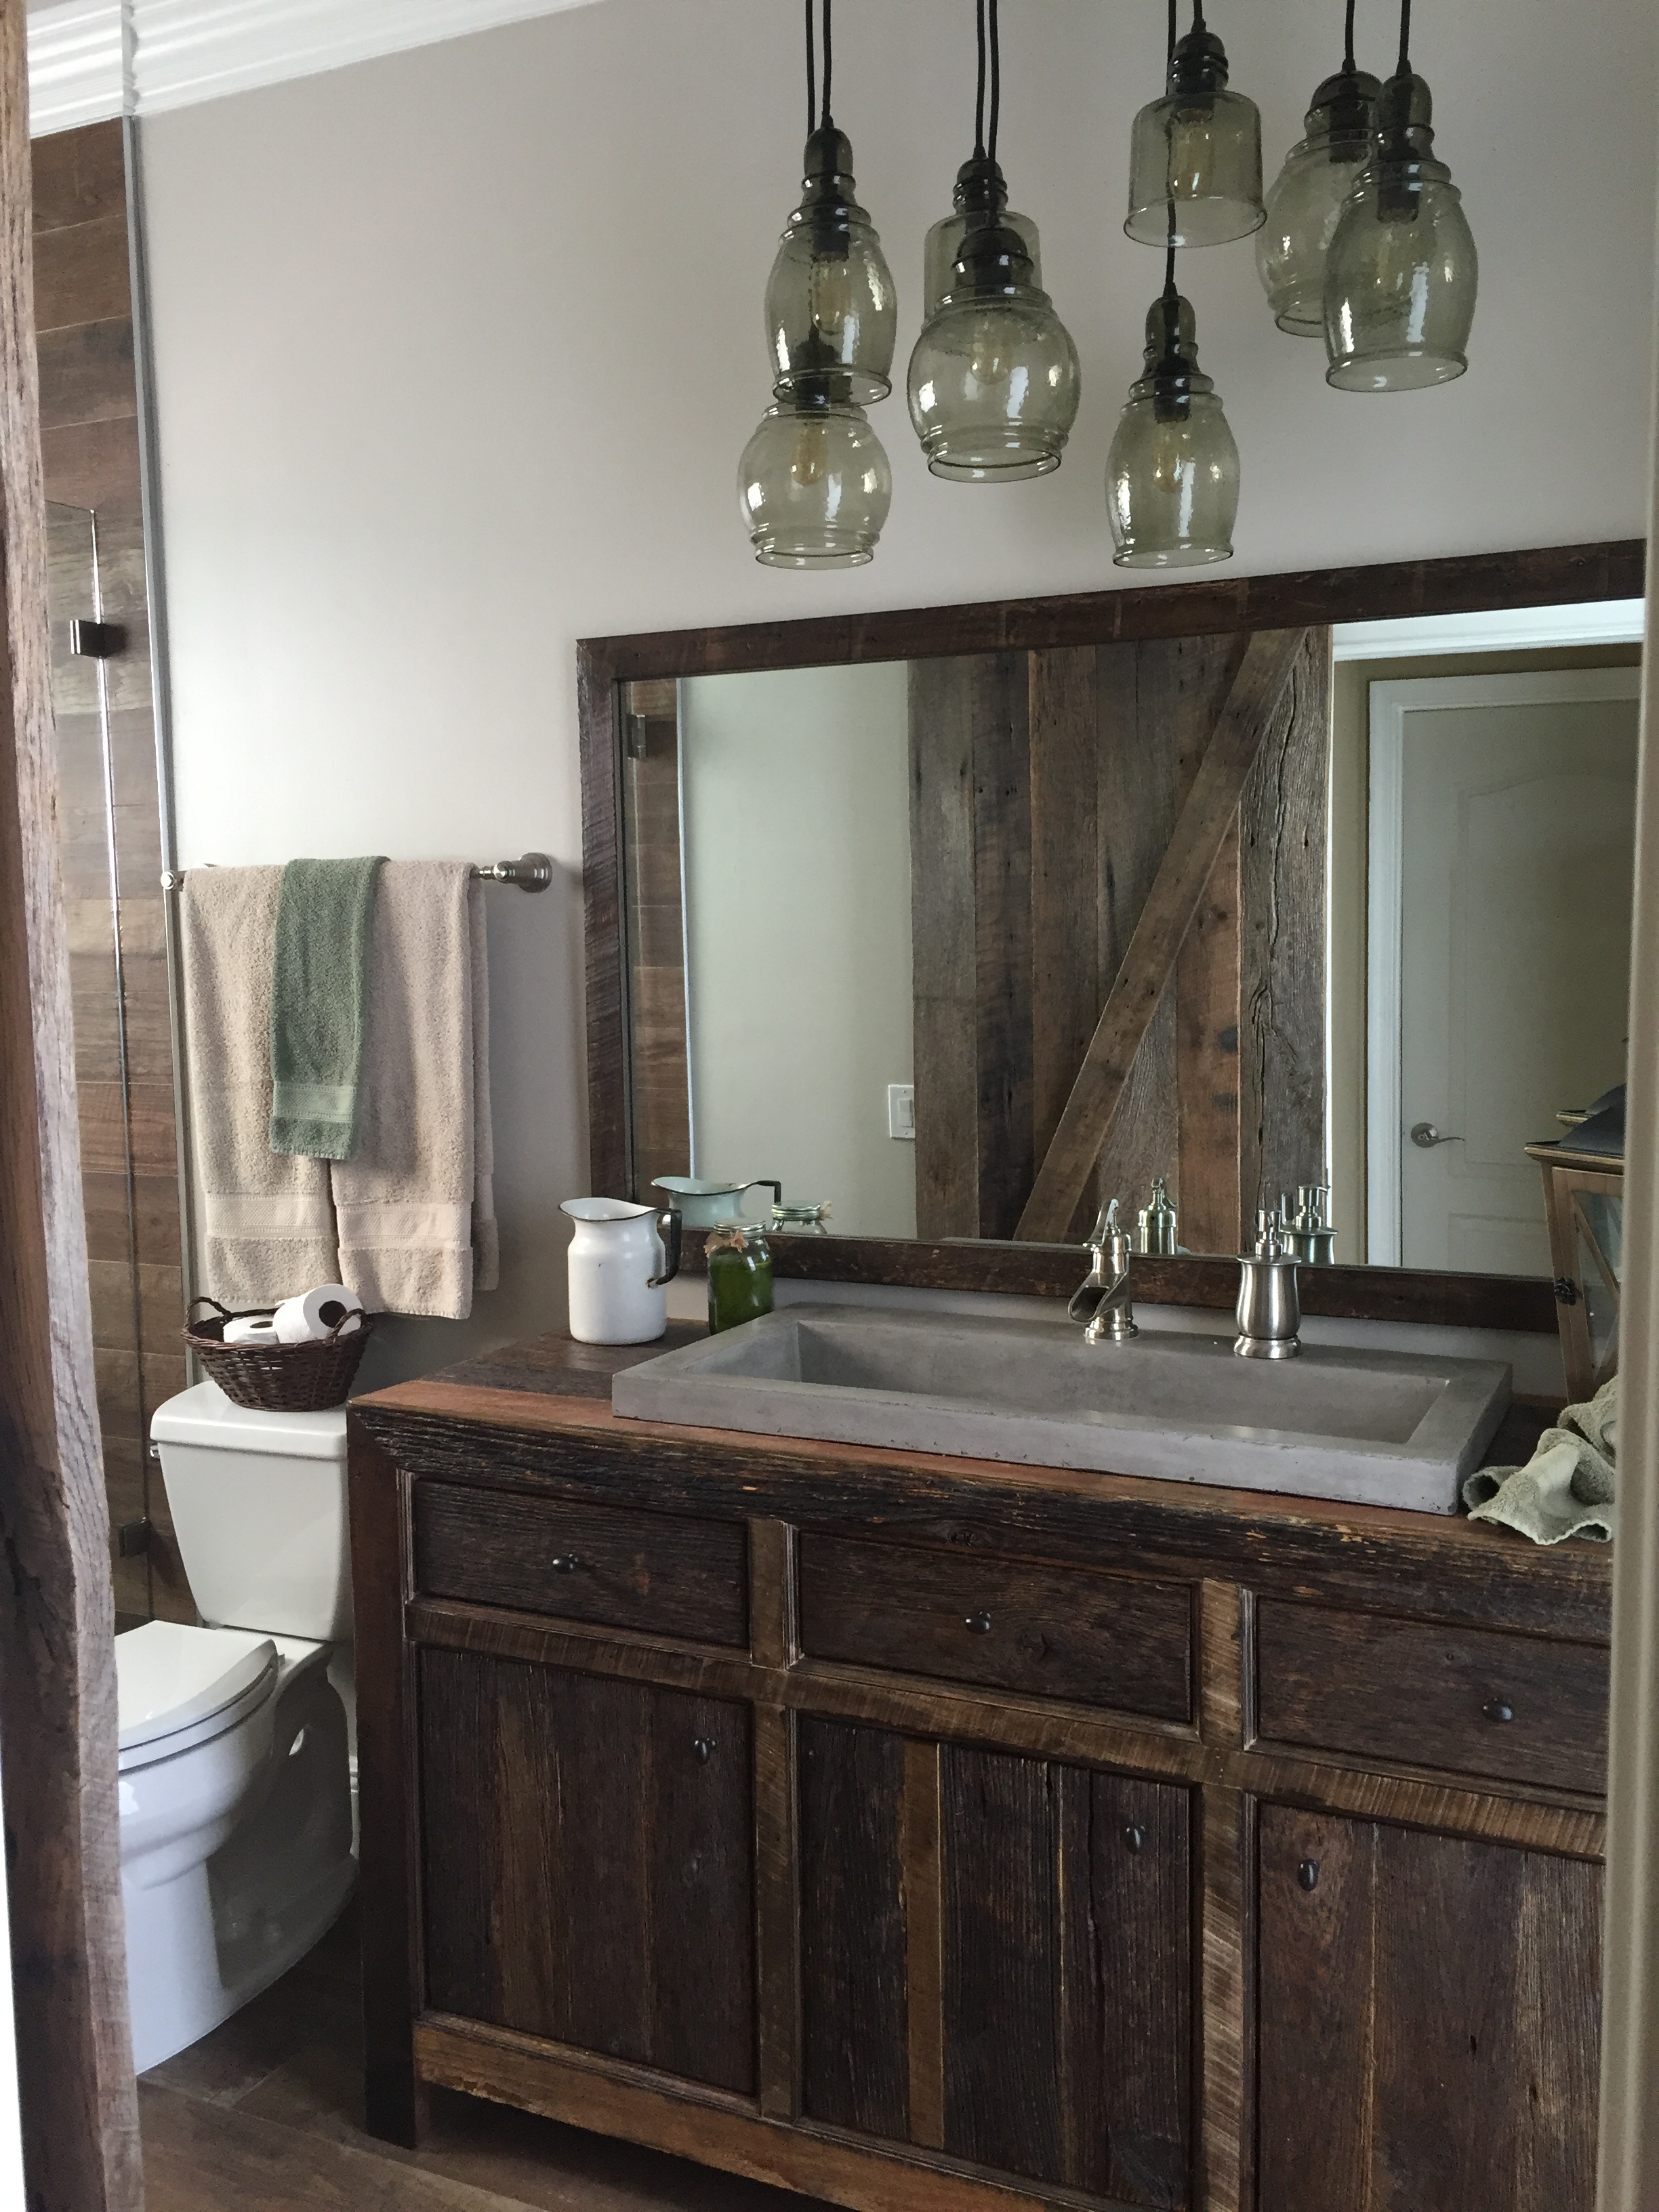 Bathroom Decor Rustic